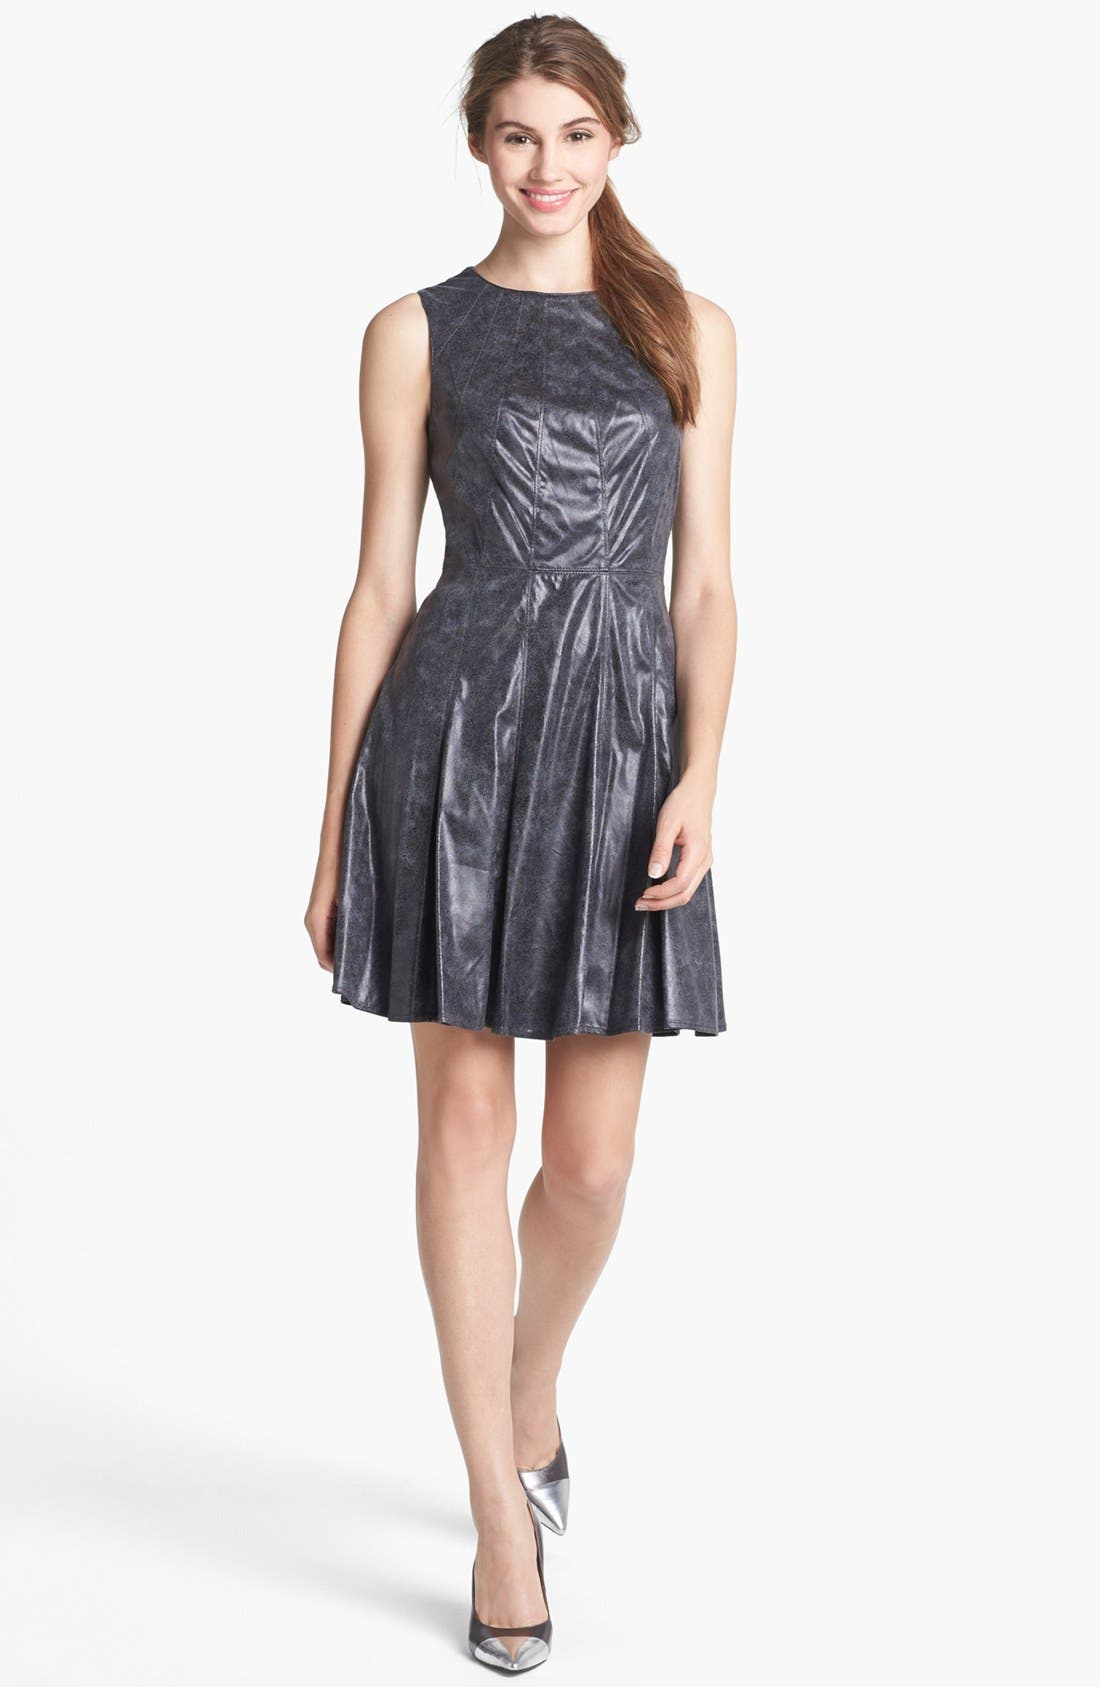 Main Image - Vince Camuto Faux Leather Fit & Flare Dress